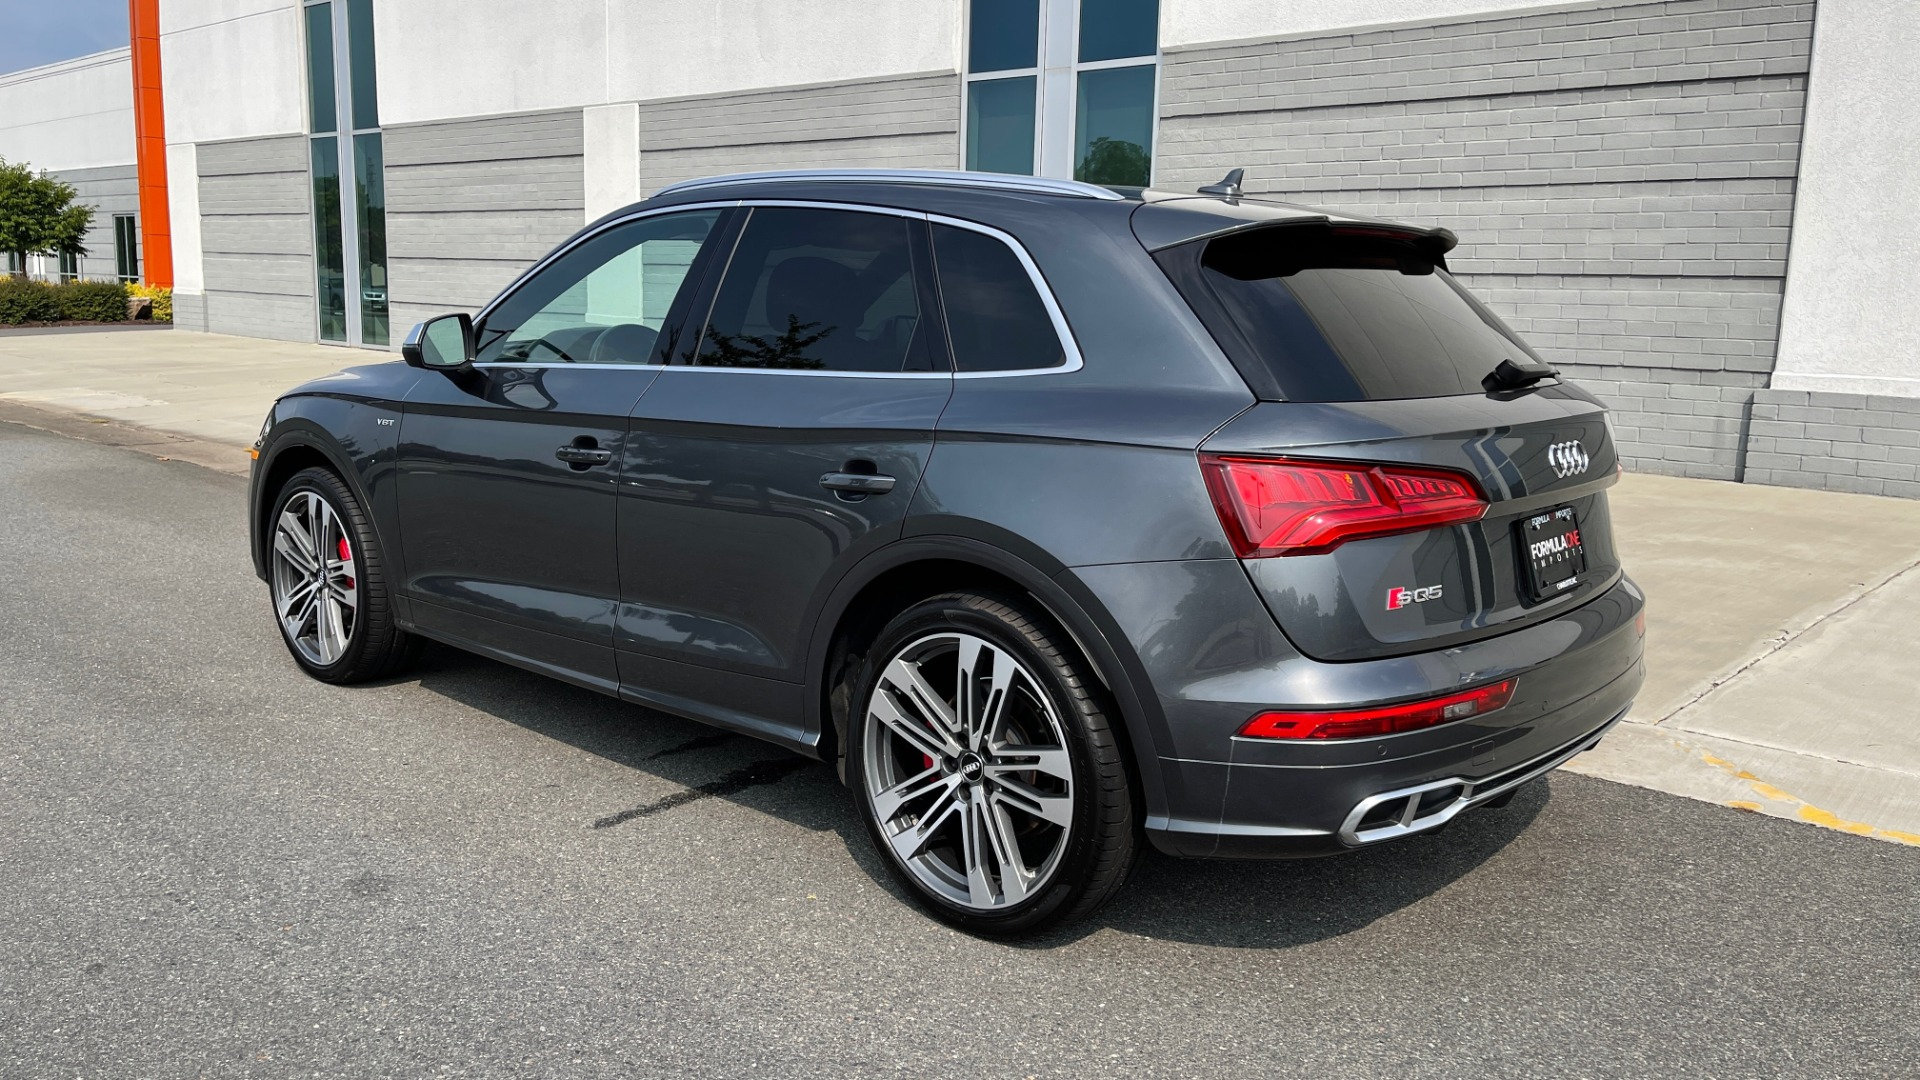 Used 2018 Audi SQ5 PREMIUM PLUS / S-SPORT / NAV / B&O SND / SUNROOF / REARVIEW for sale $43,995 at Formula Imports in Charlotte NC 28227 5